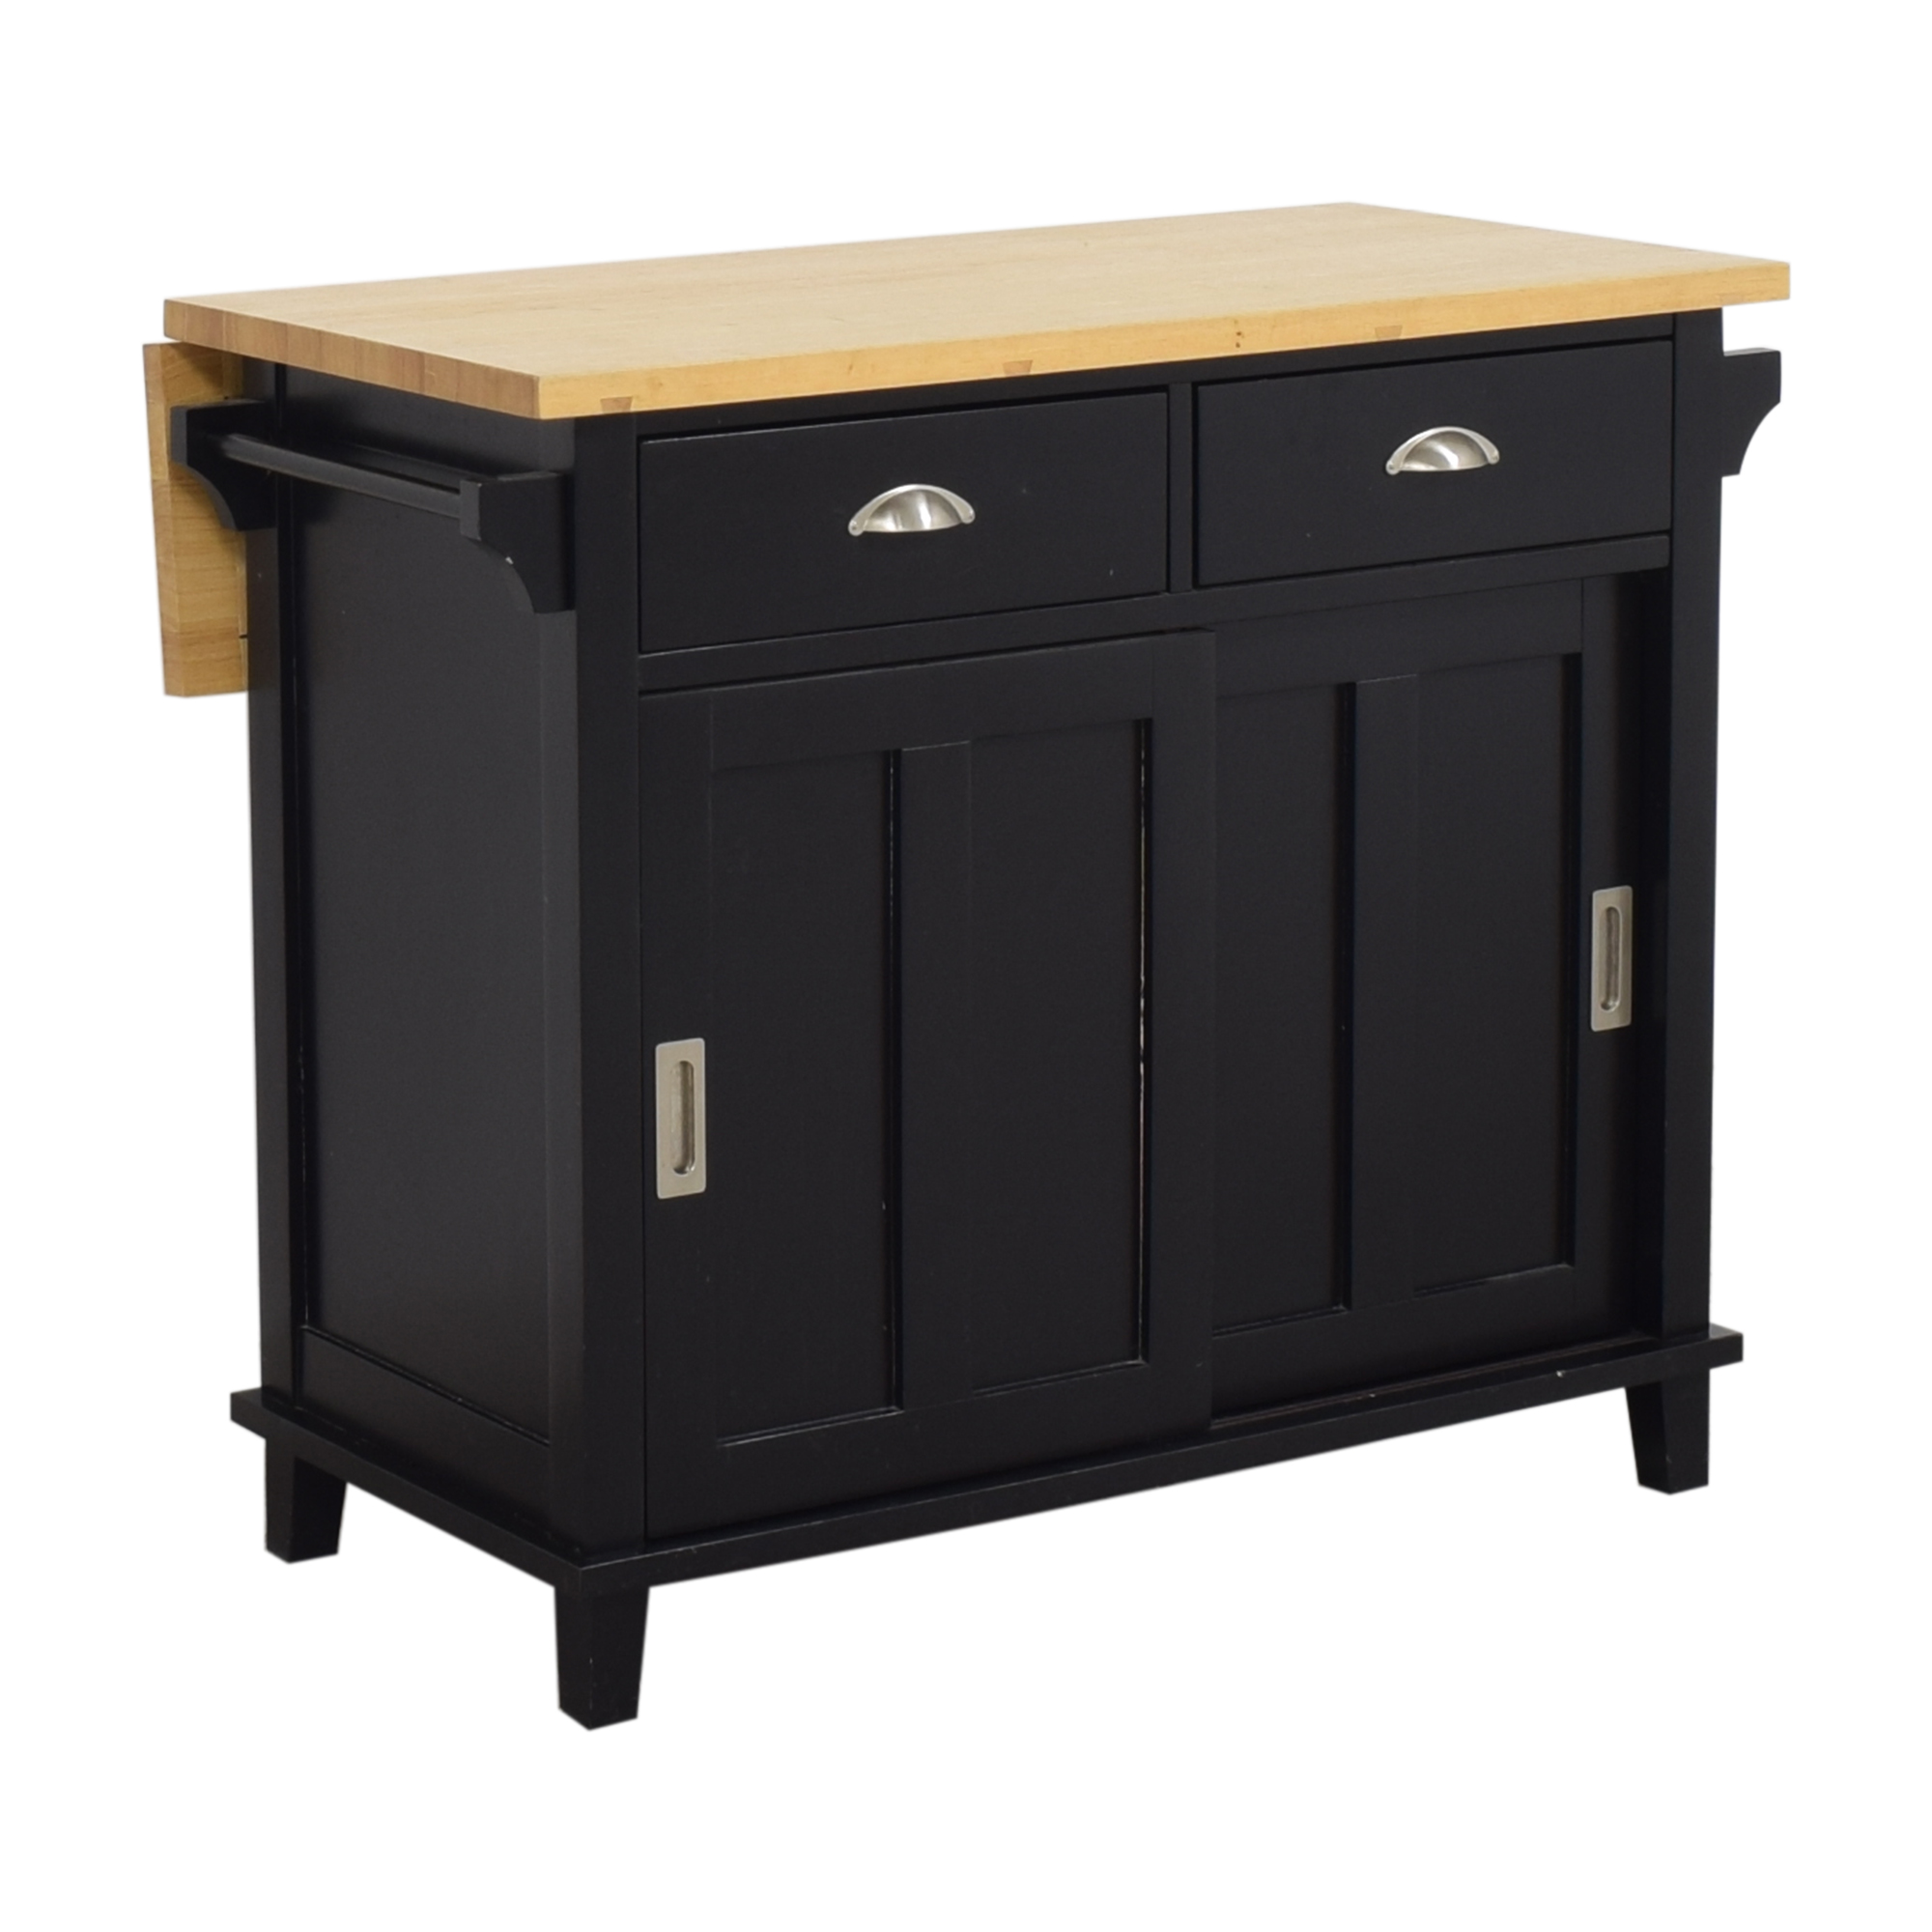 Crate & Barrel Belmont Kitchen Island / Utility Tables